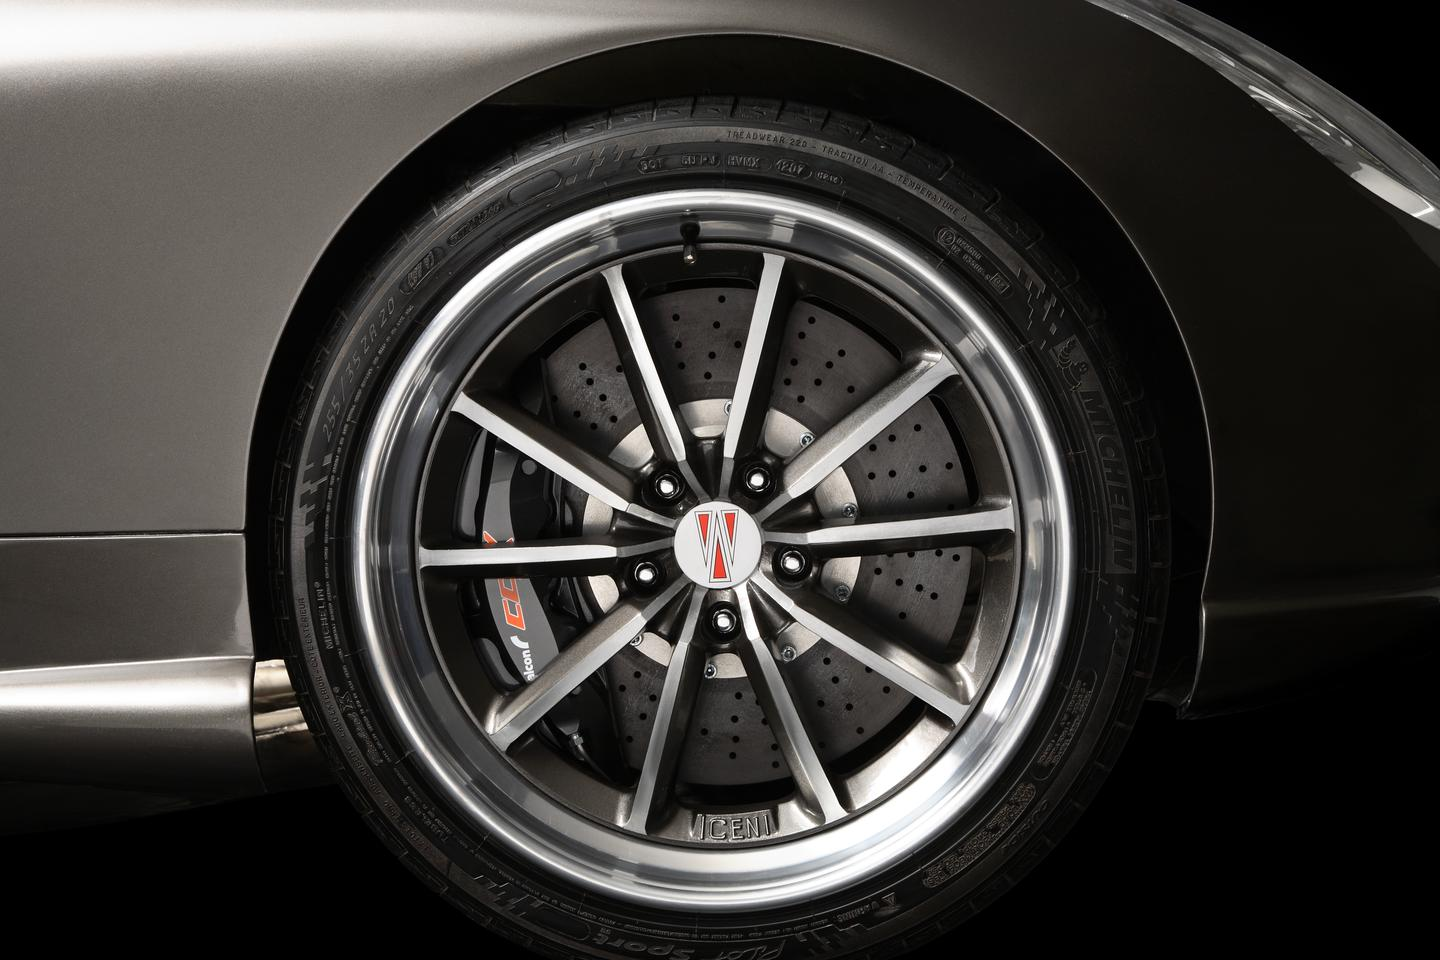 The Iceni features 39 bespoke parts, including the wheels